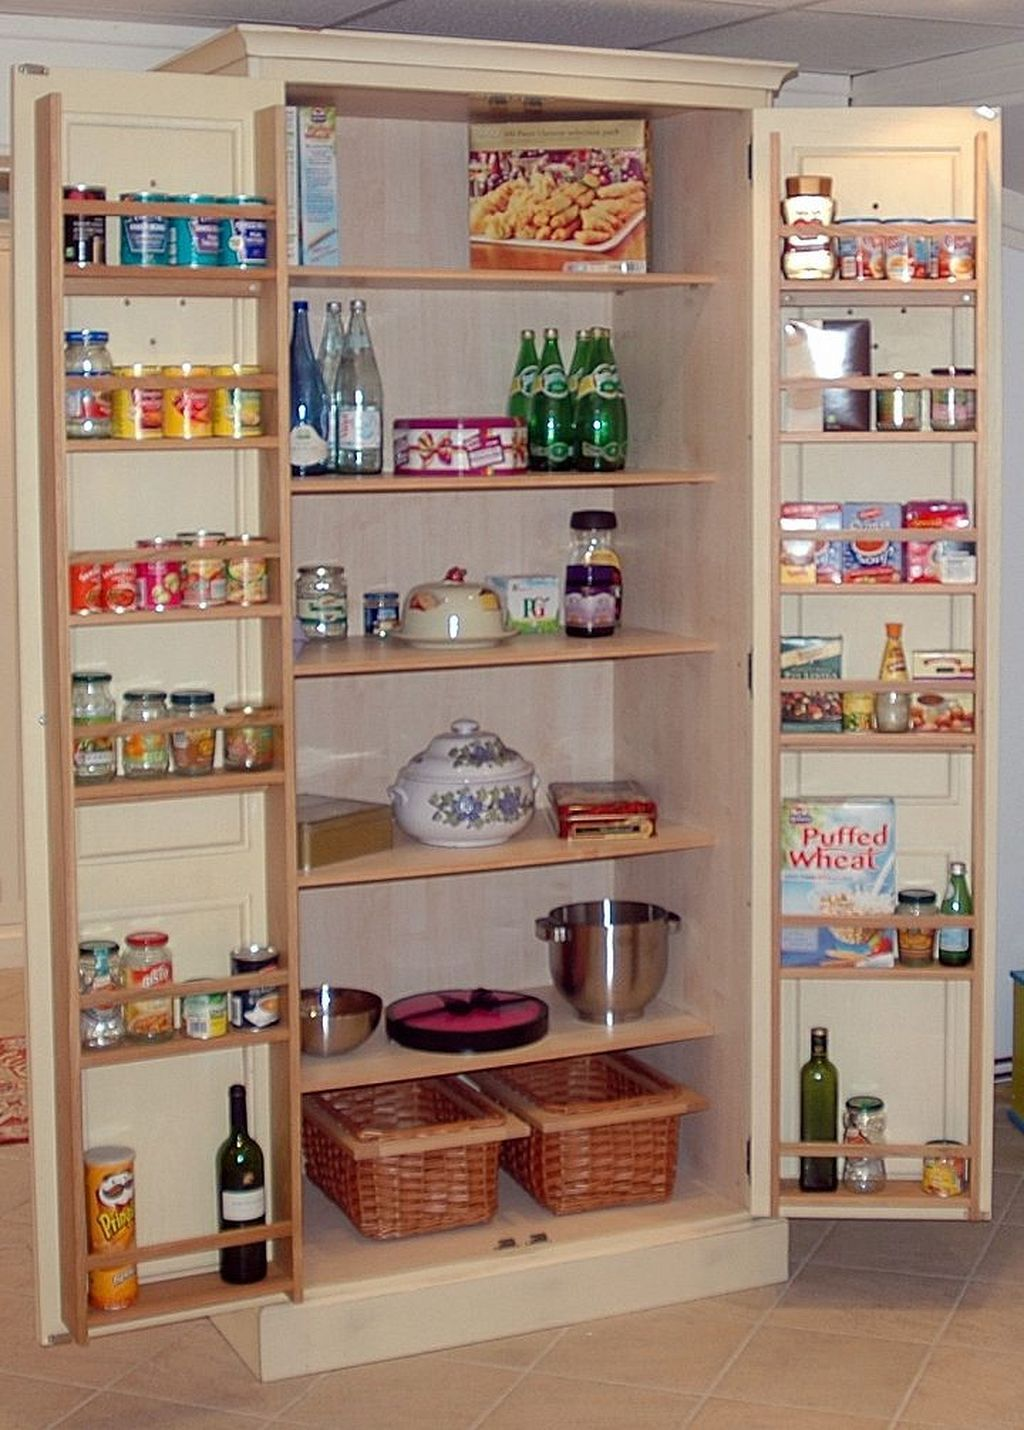 30 amazing storage hacks on a budget for small kitchen